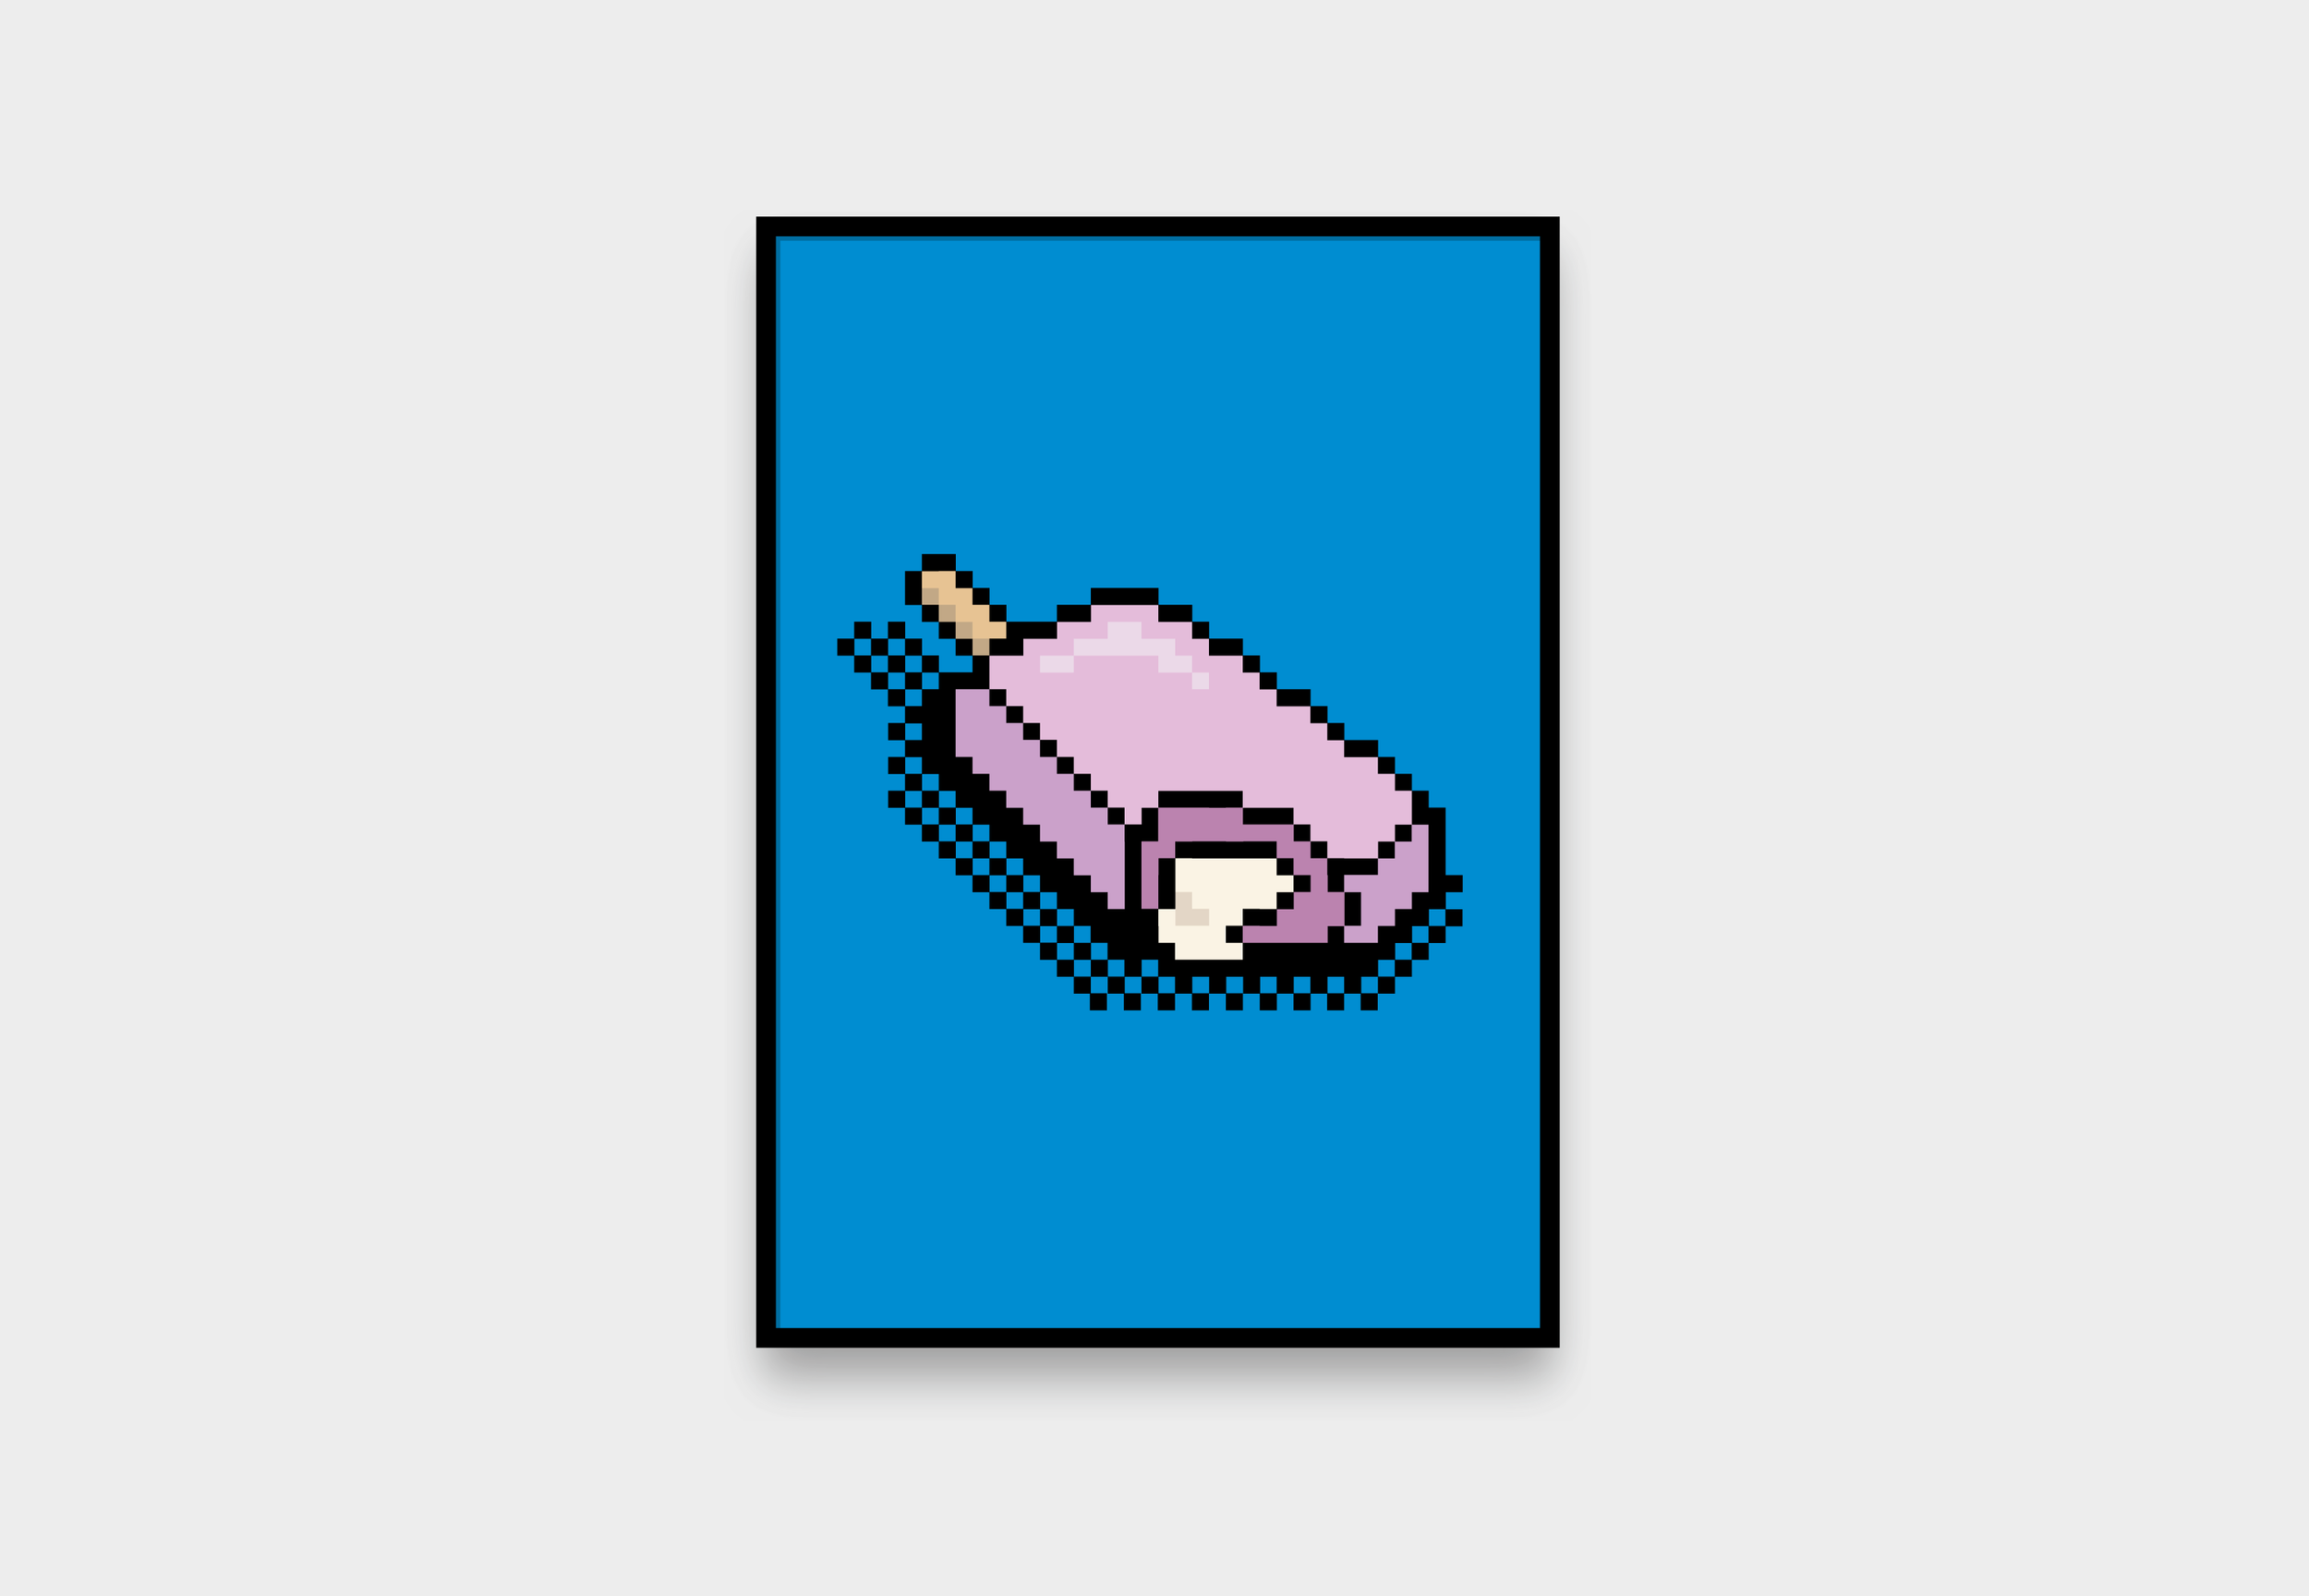 gommashop_afiches_pixelicecream.png